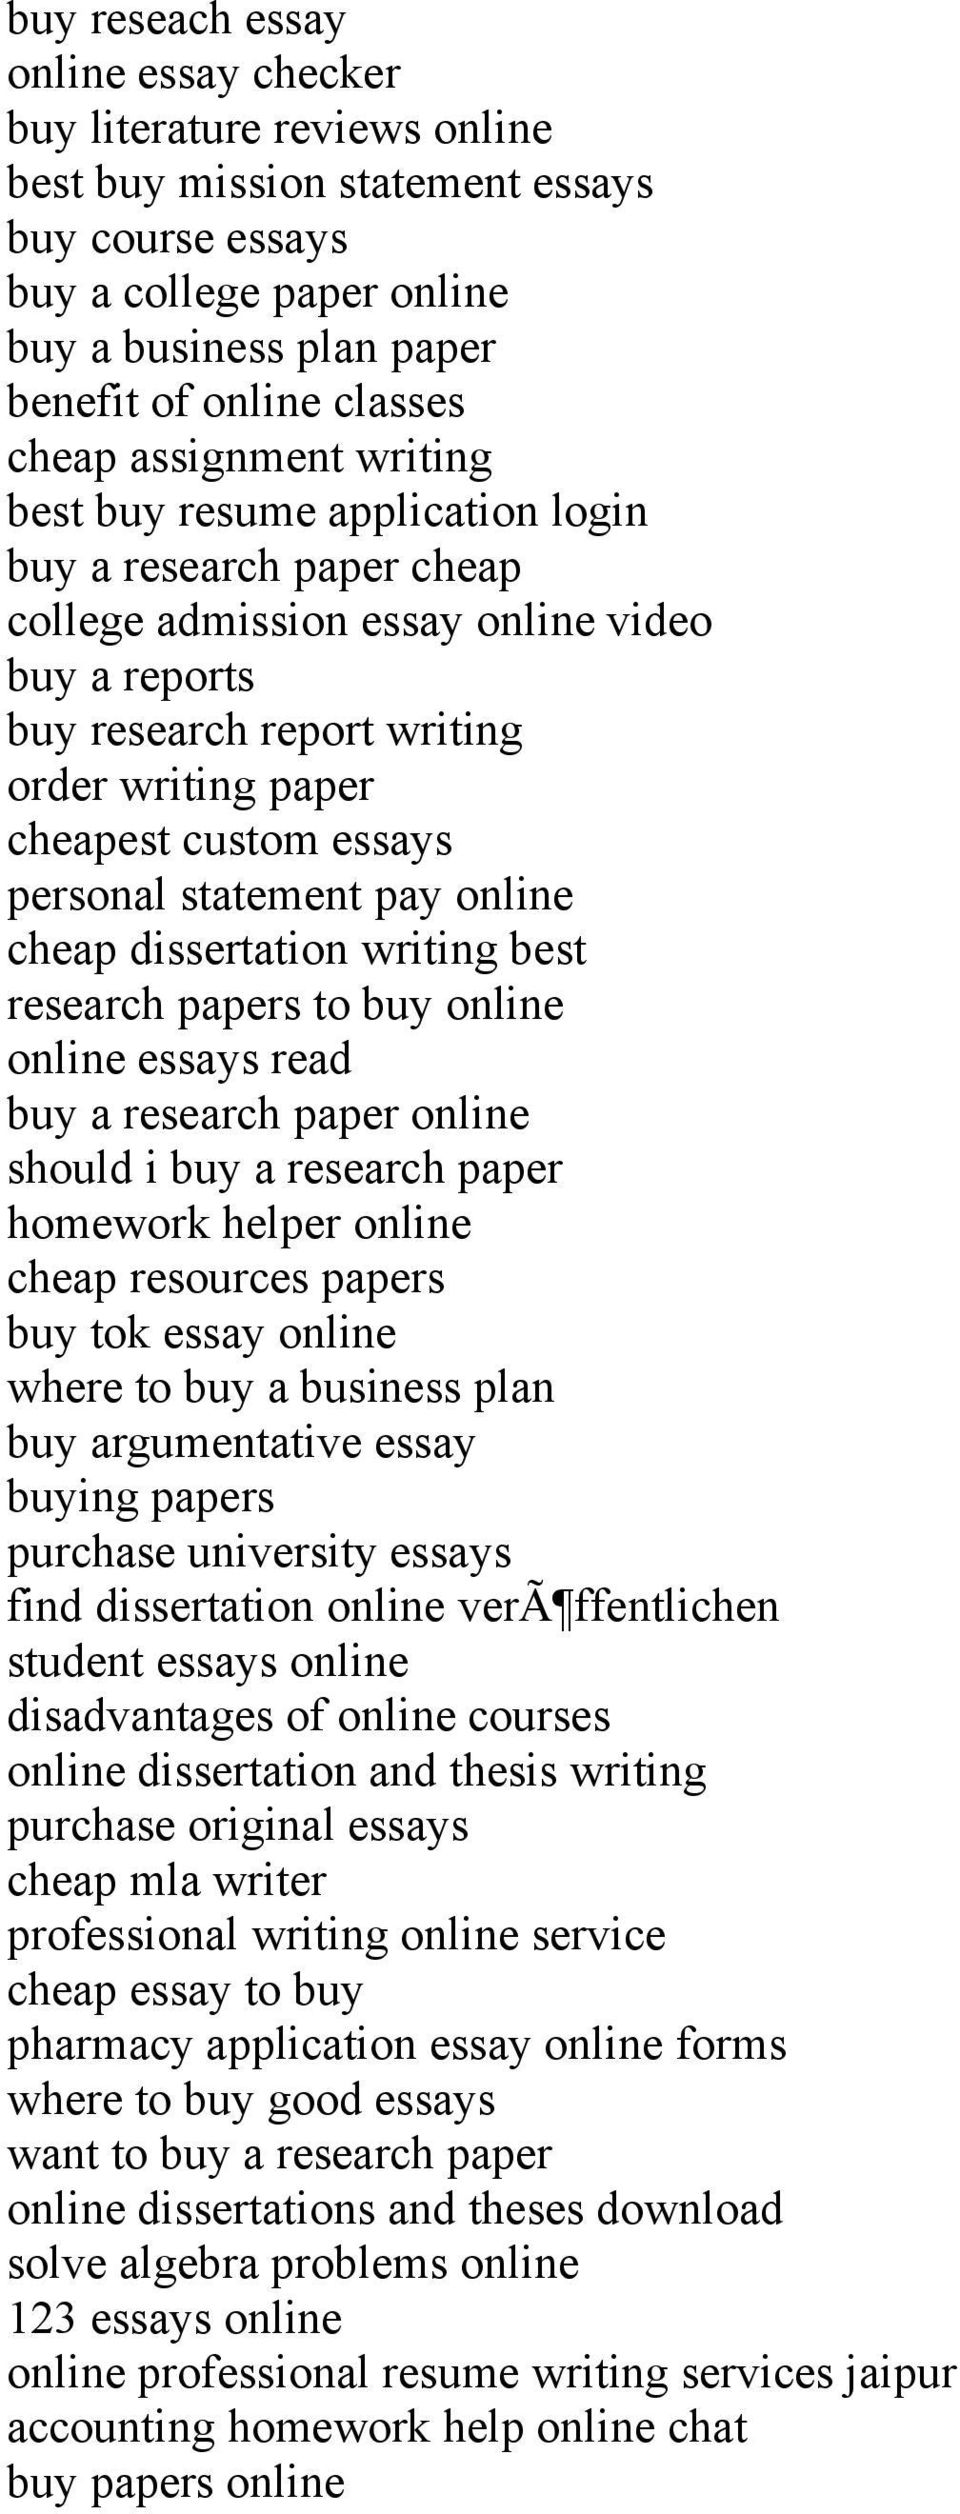 custom essays personal statement pay online cheap dissertation writing best research papers to buy online online essays read buy a research paper online should i buy a research paper homework helper